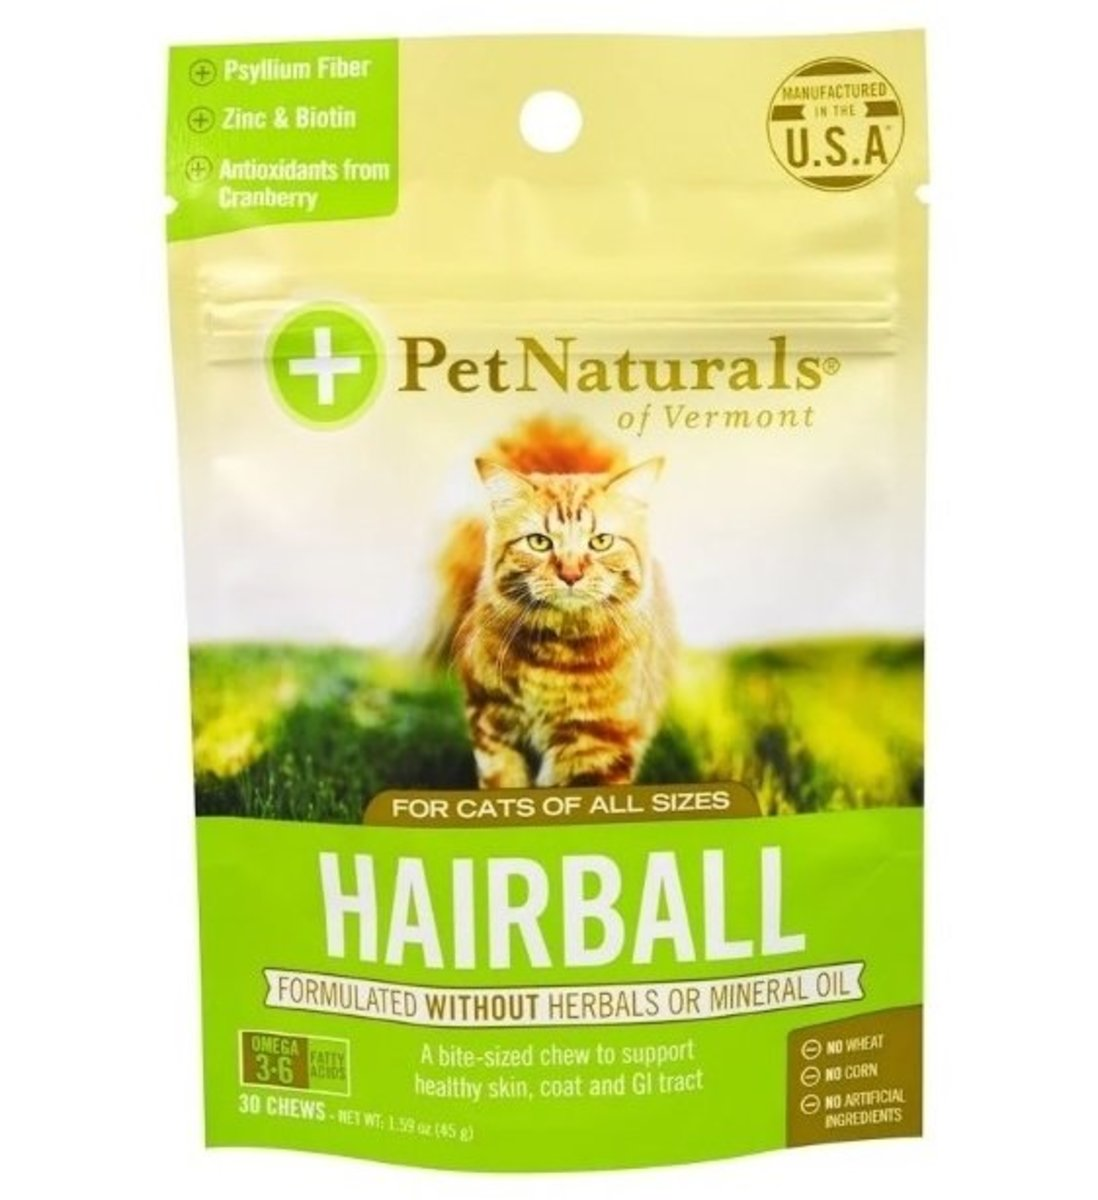 Pet Naturals Vermont Hairball For Cats 30 Chews